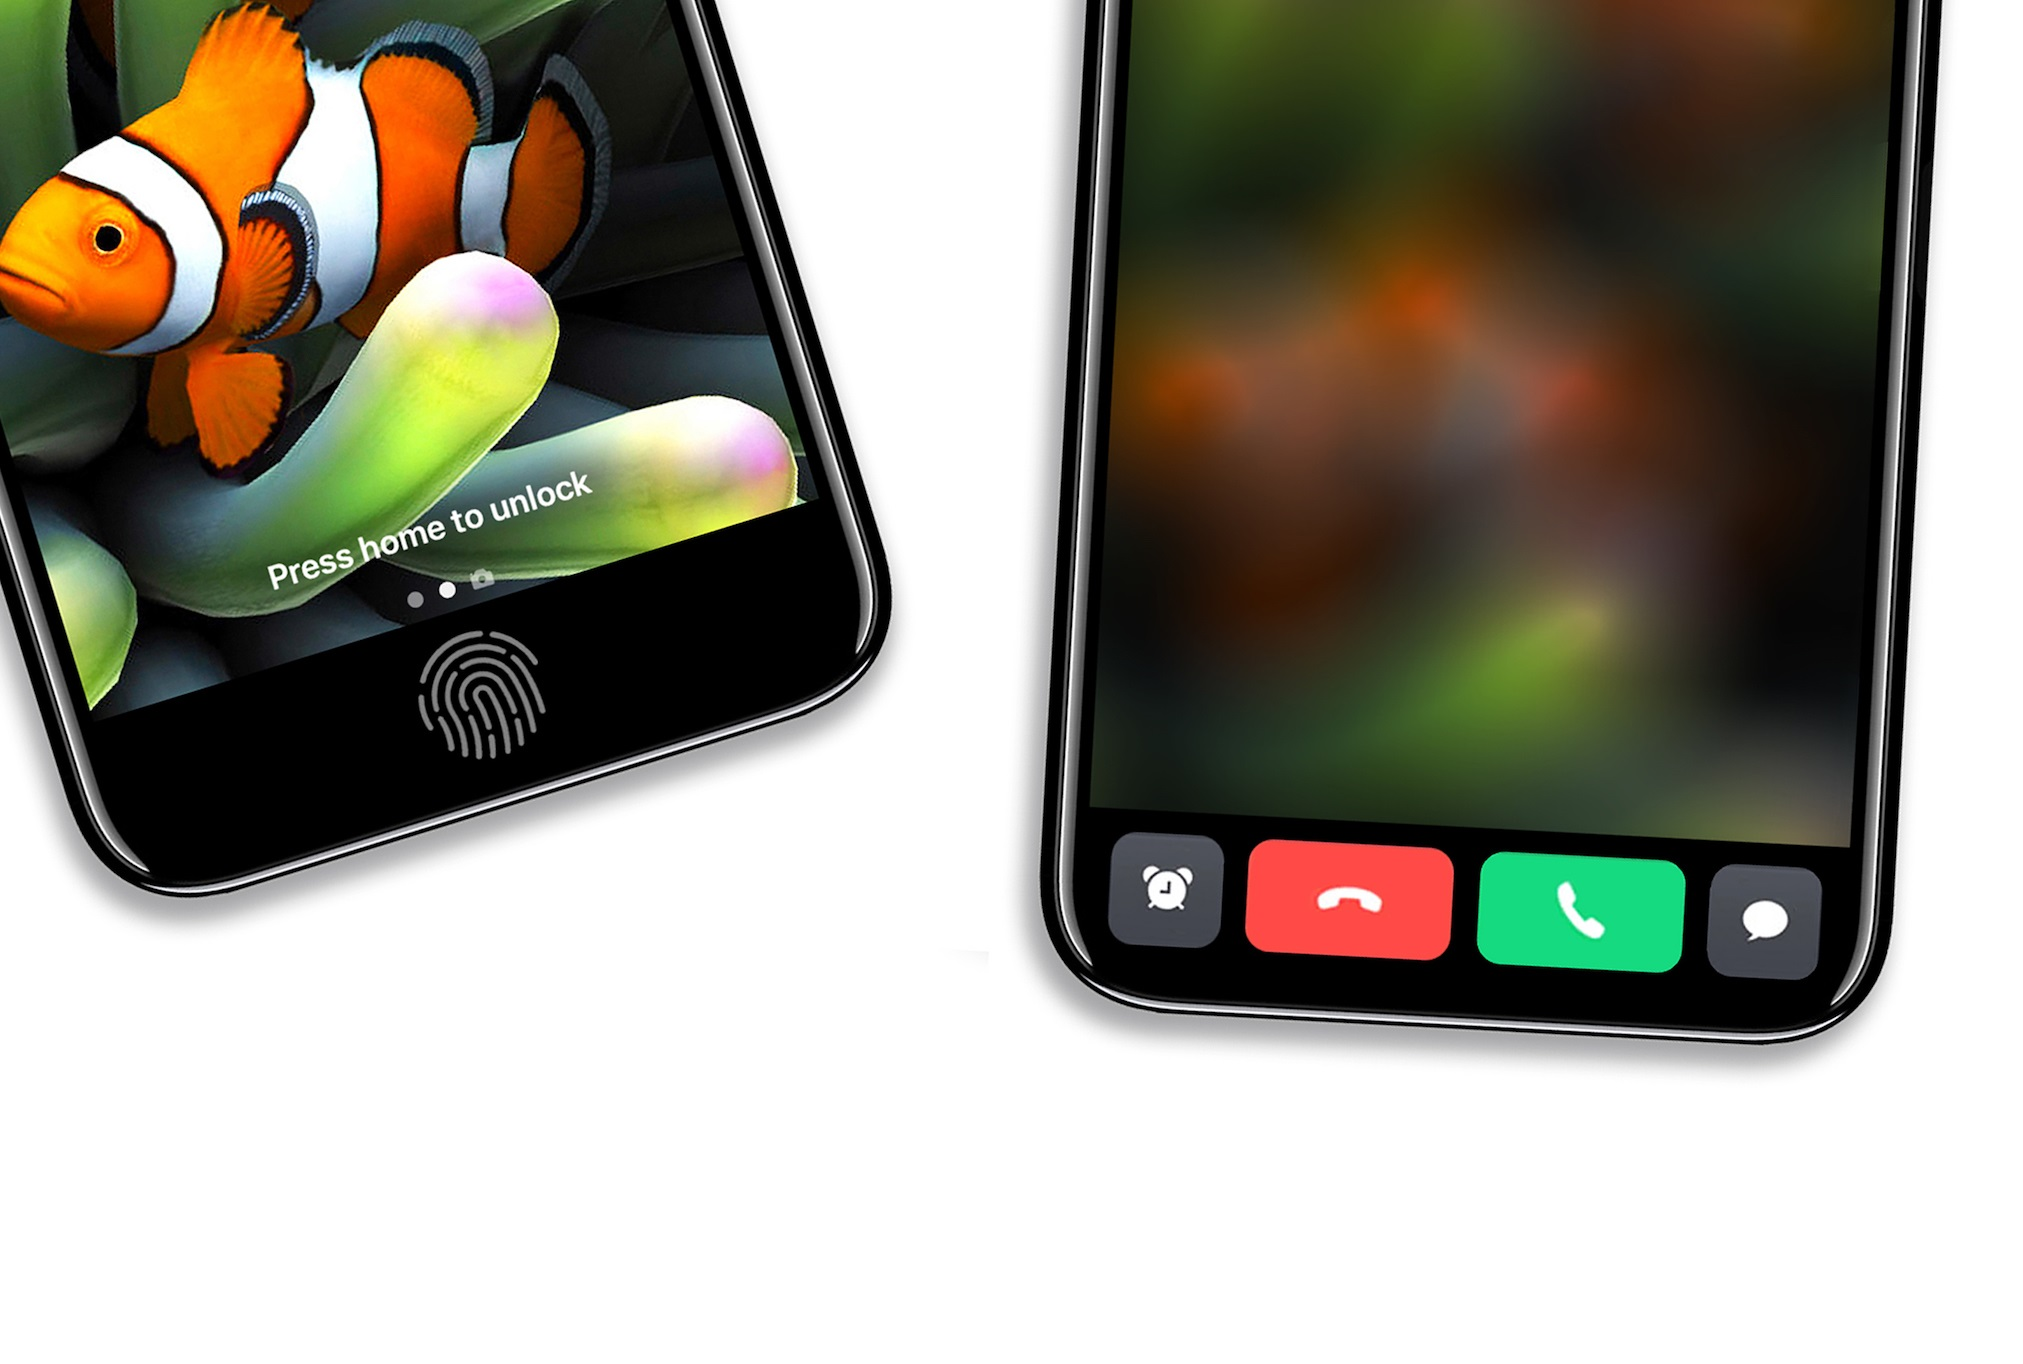 iPhone 8 concept interfata urata